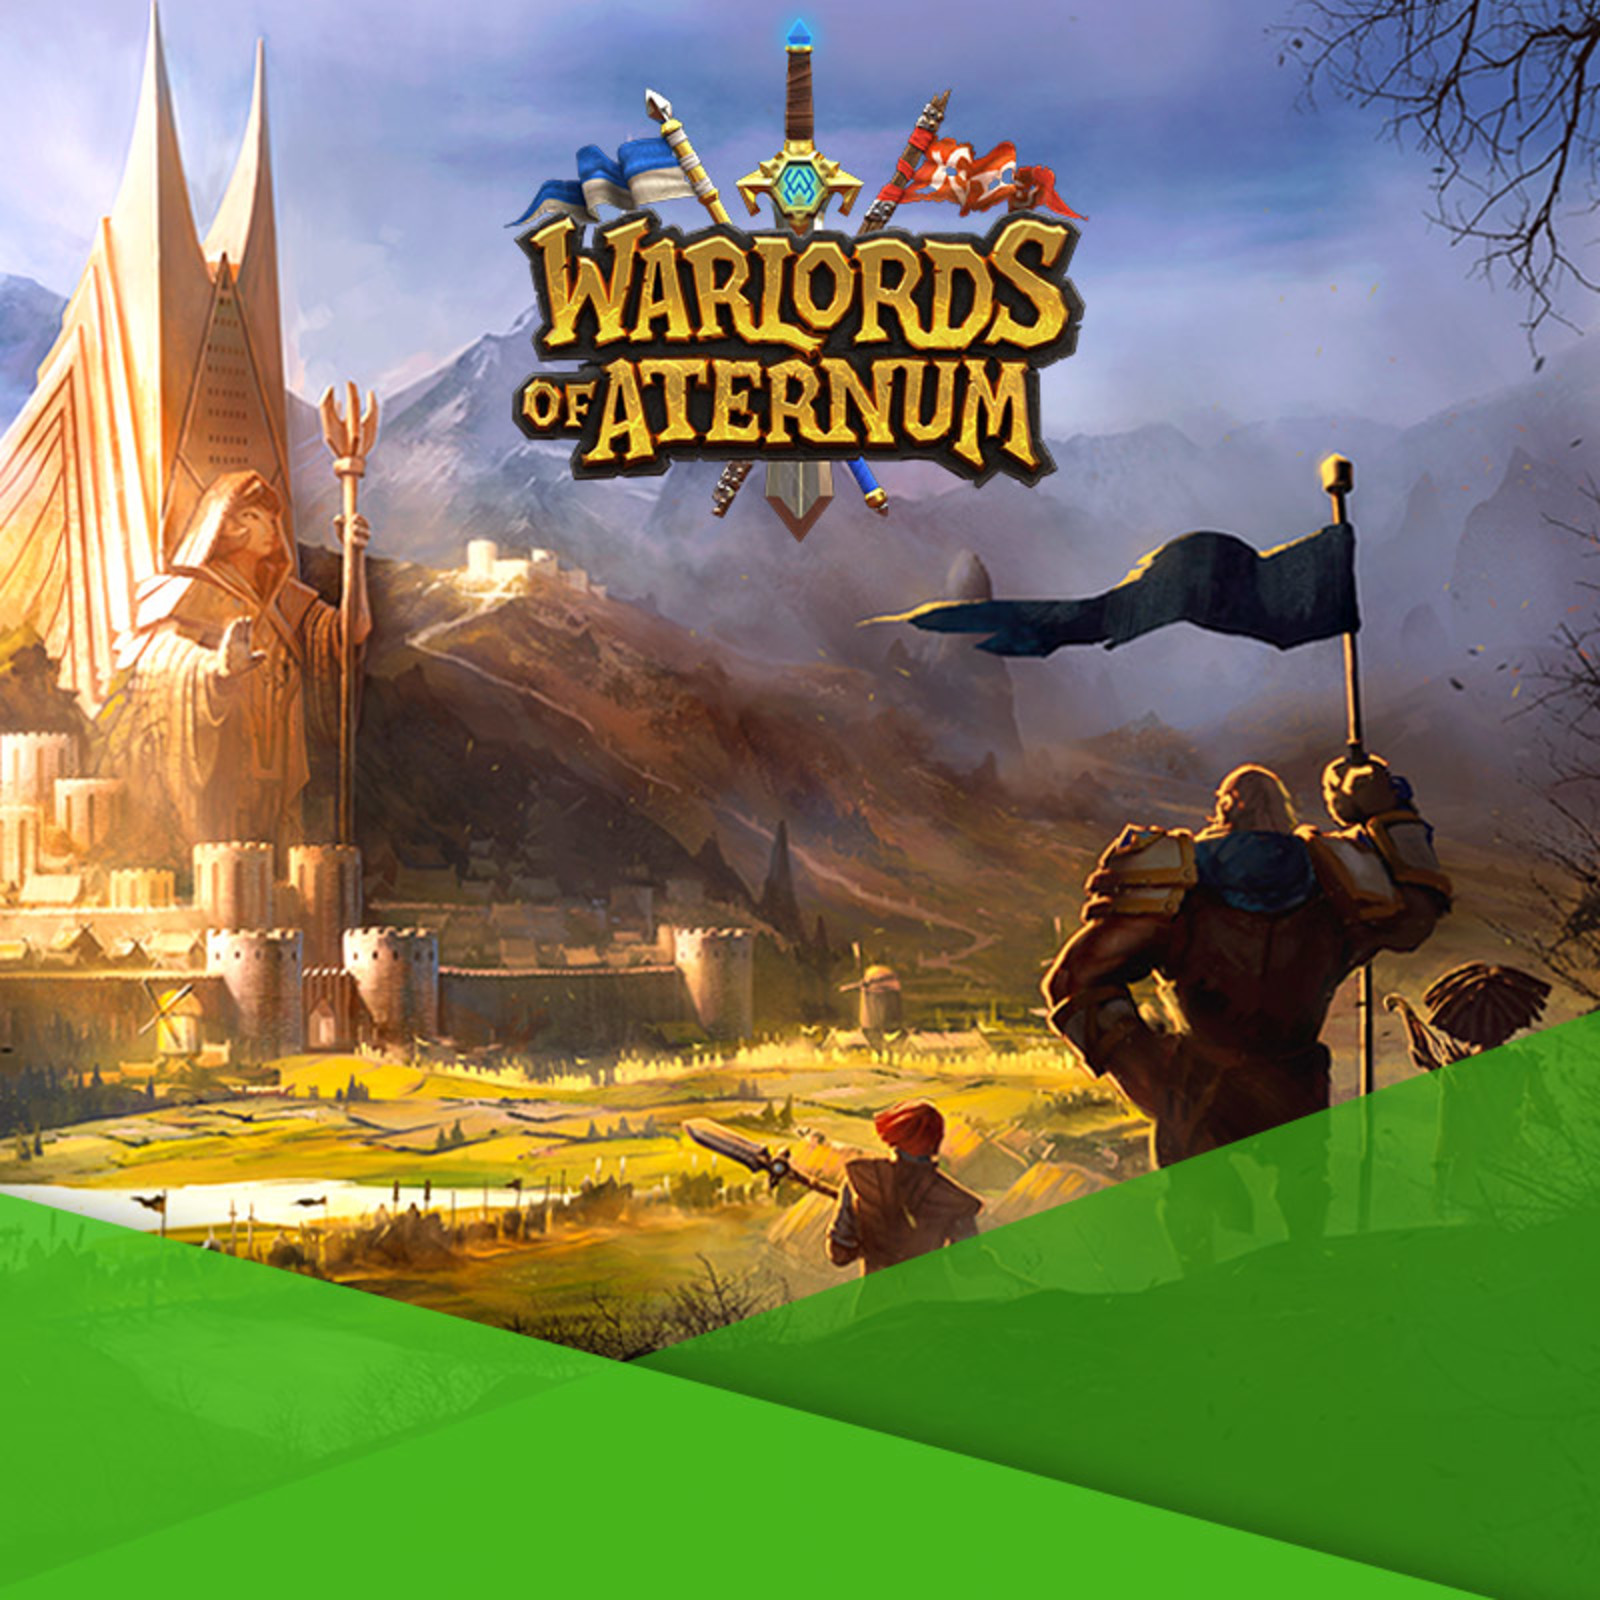 Free Online Games - Play Strategy Games and RPG Online for free!